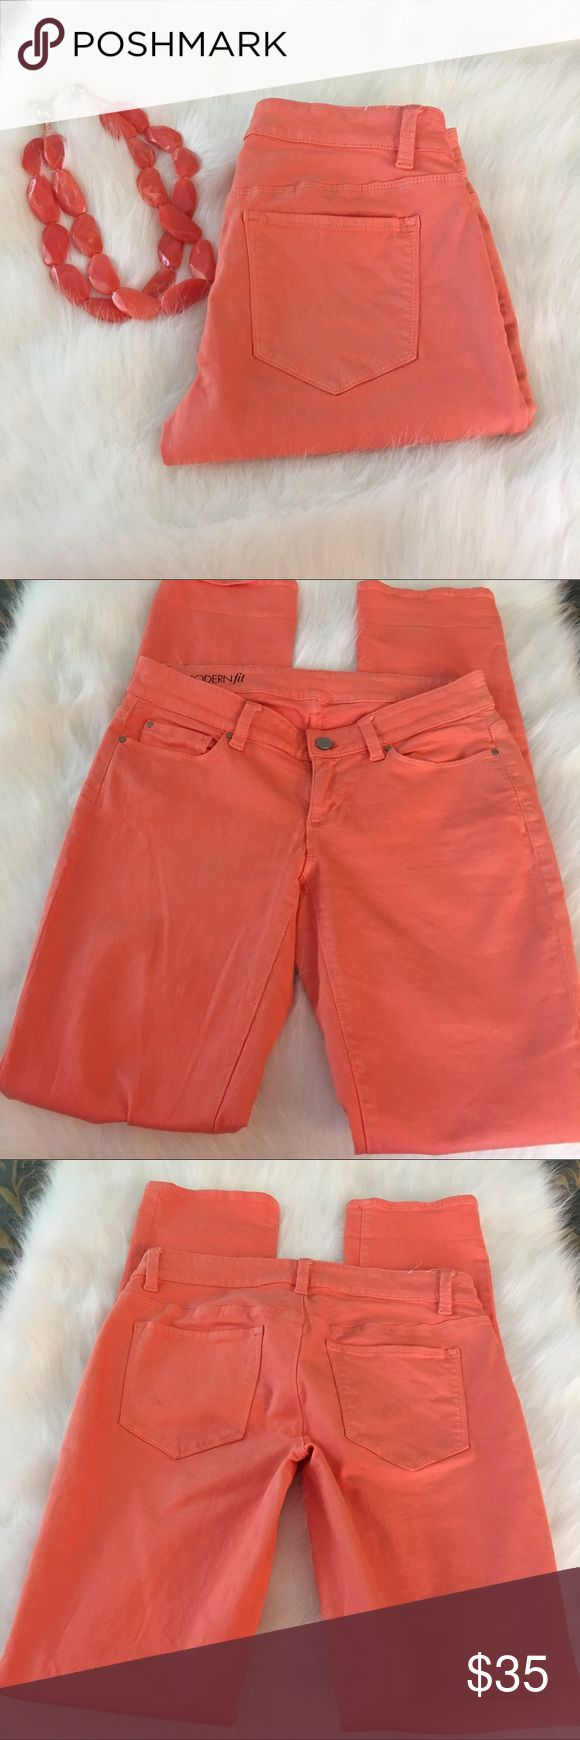 "Ann Taylor coral skinny jeans Ann Taylor coral skinny jeans.   34"" inseam.  Like new condition.  Great color for spring and summer. Ann Taylor Jeans Skinny"